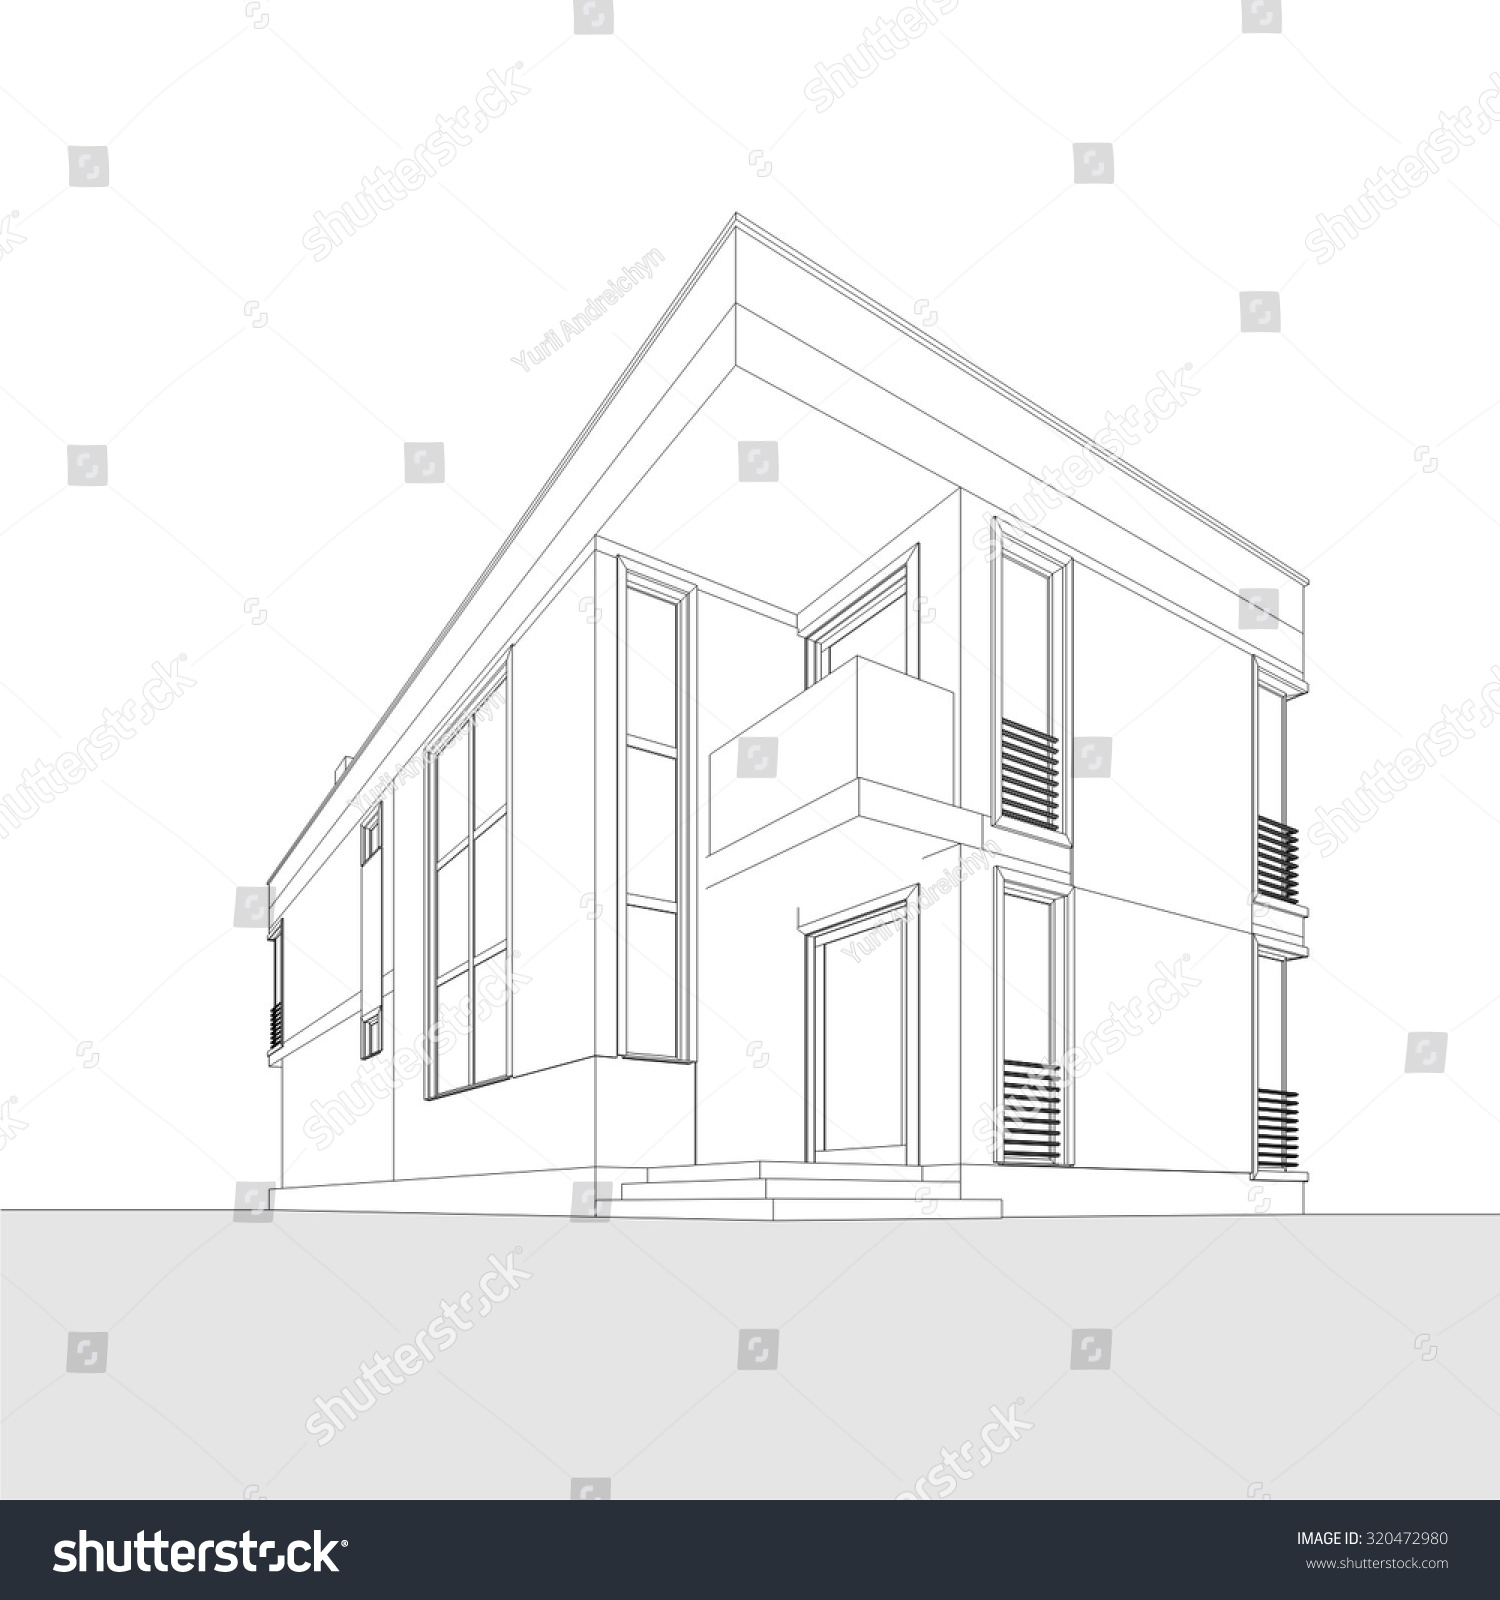 Architecture Building Geometric Background Stock Vector